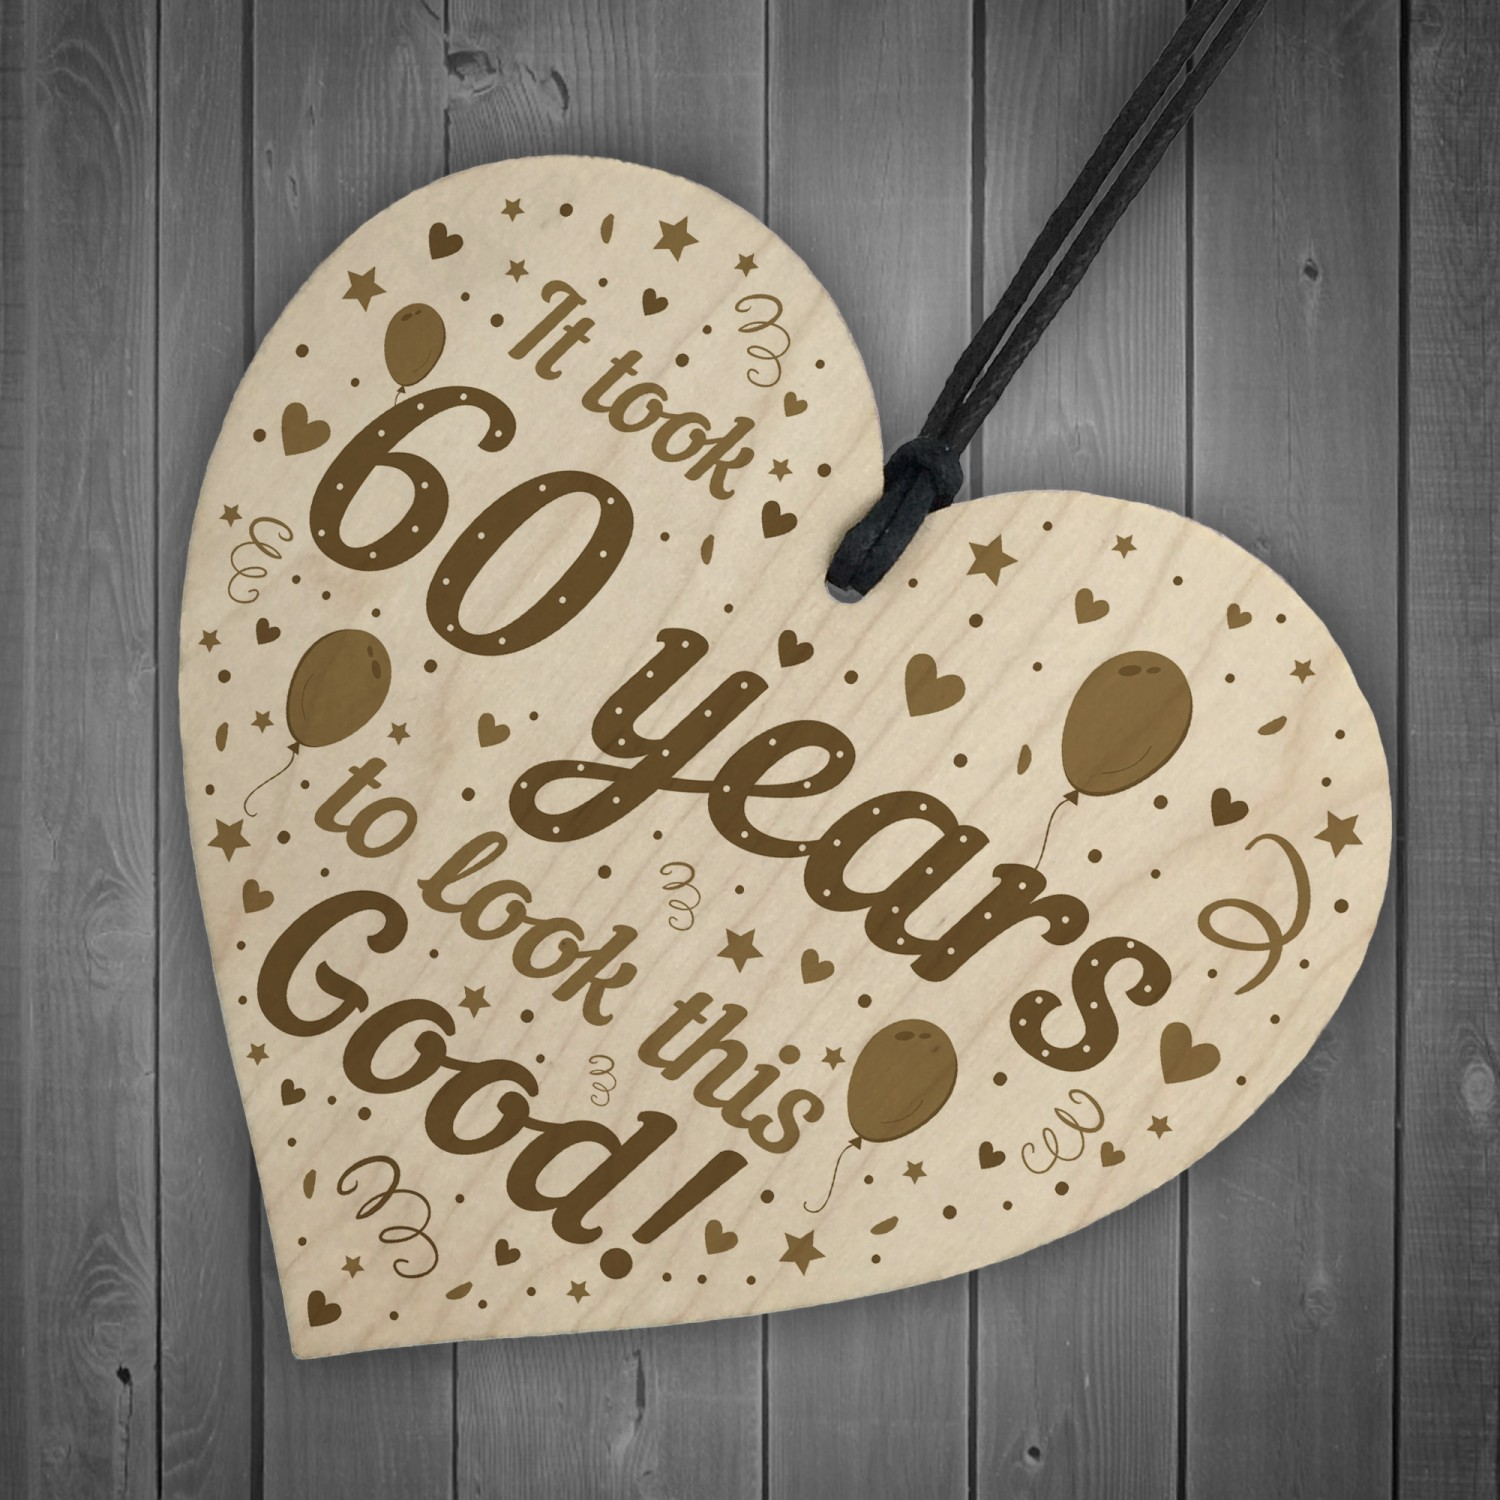 Funny 60th Birthday Gifts For Women Men Wooden Heart